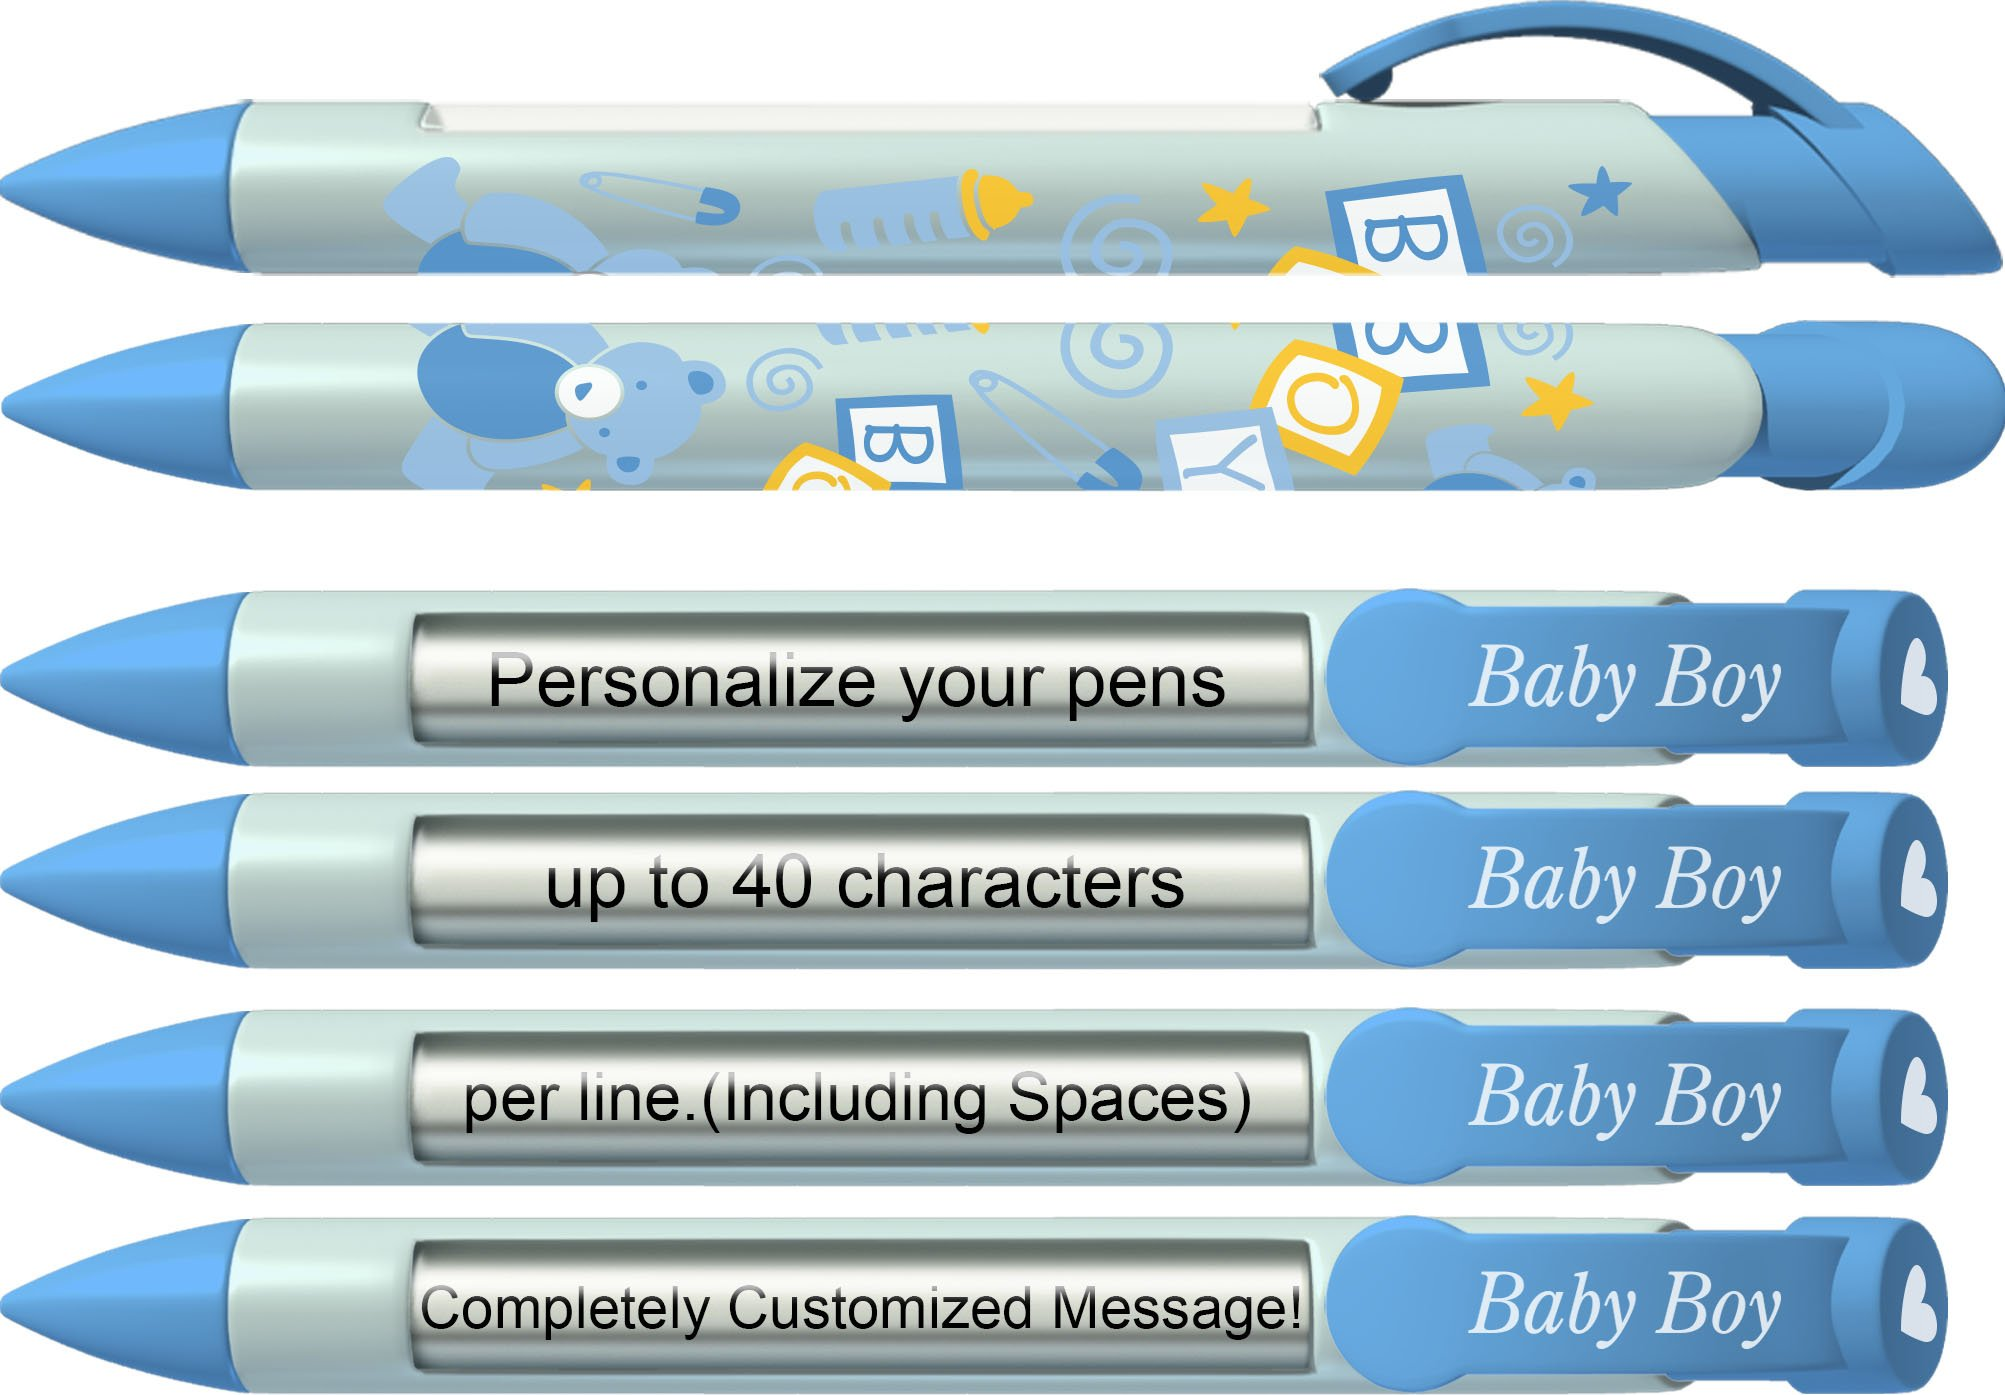 Baby Pen by Greeting Pen- Personalized Baby Shower Favor / Invitation and Birth Annoucement Pens - Baby Boy Blocks Rotating Message Pen 50 pack (P-BP-21-50)